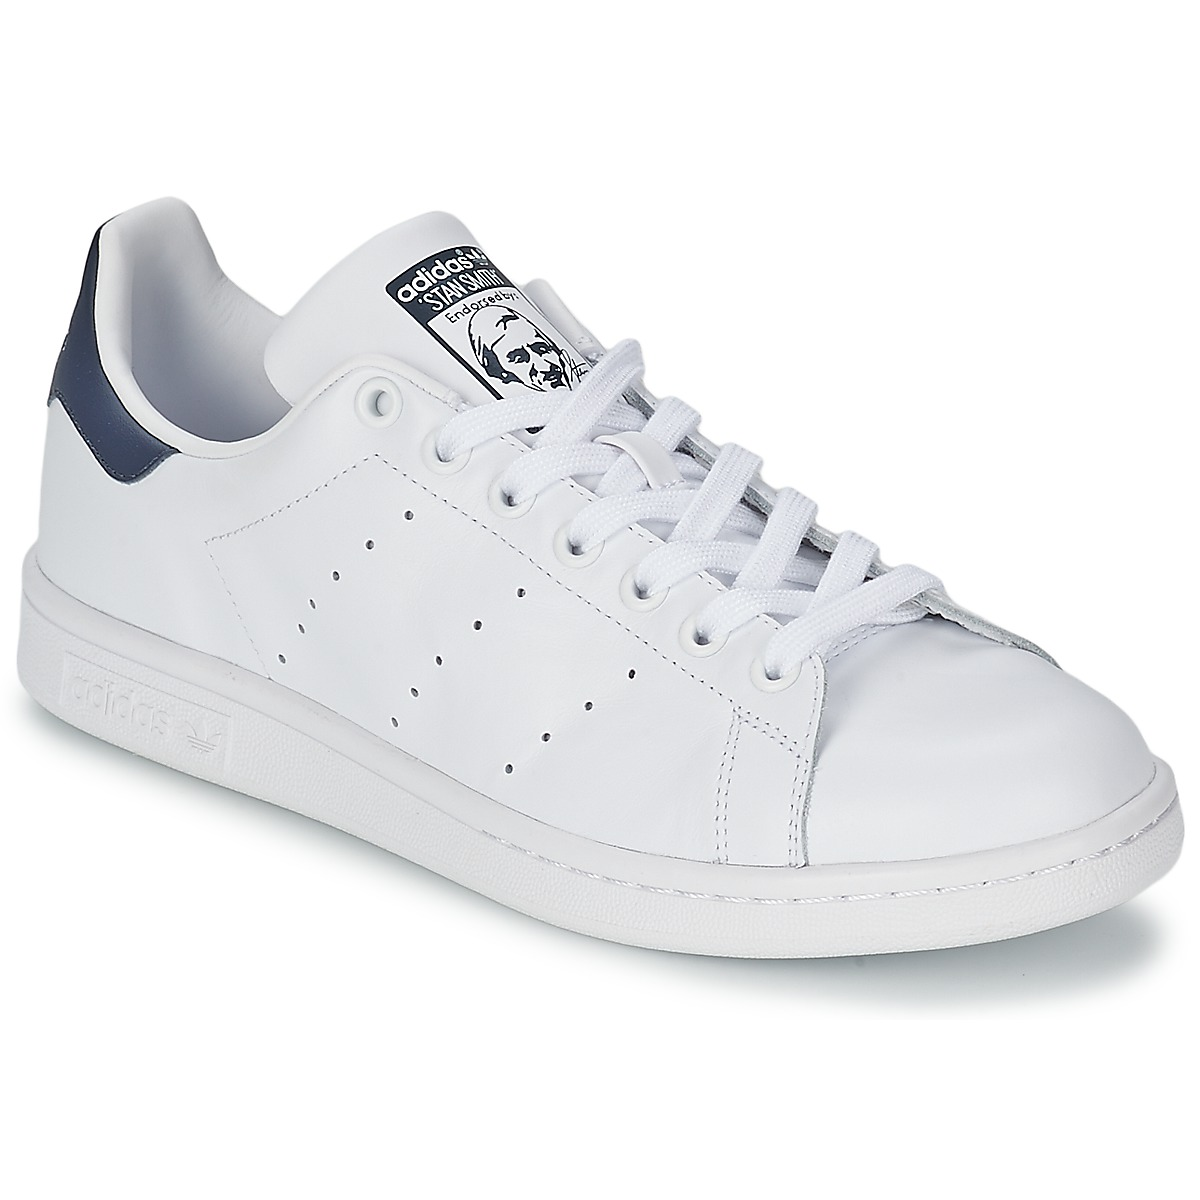 baskets basses adidas originals stan smith blanc bleu livraison gratuite avec. Black Bedroom Furniture Sets. Home Design Ideas